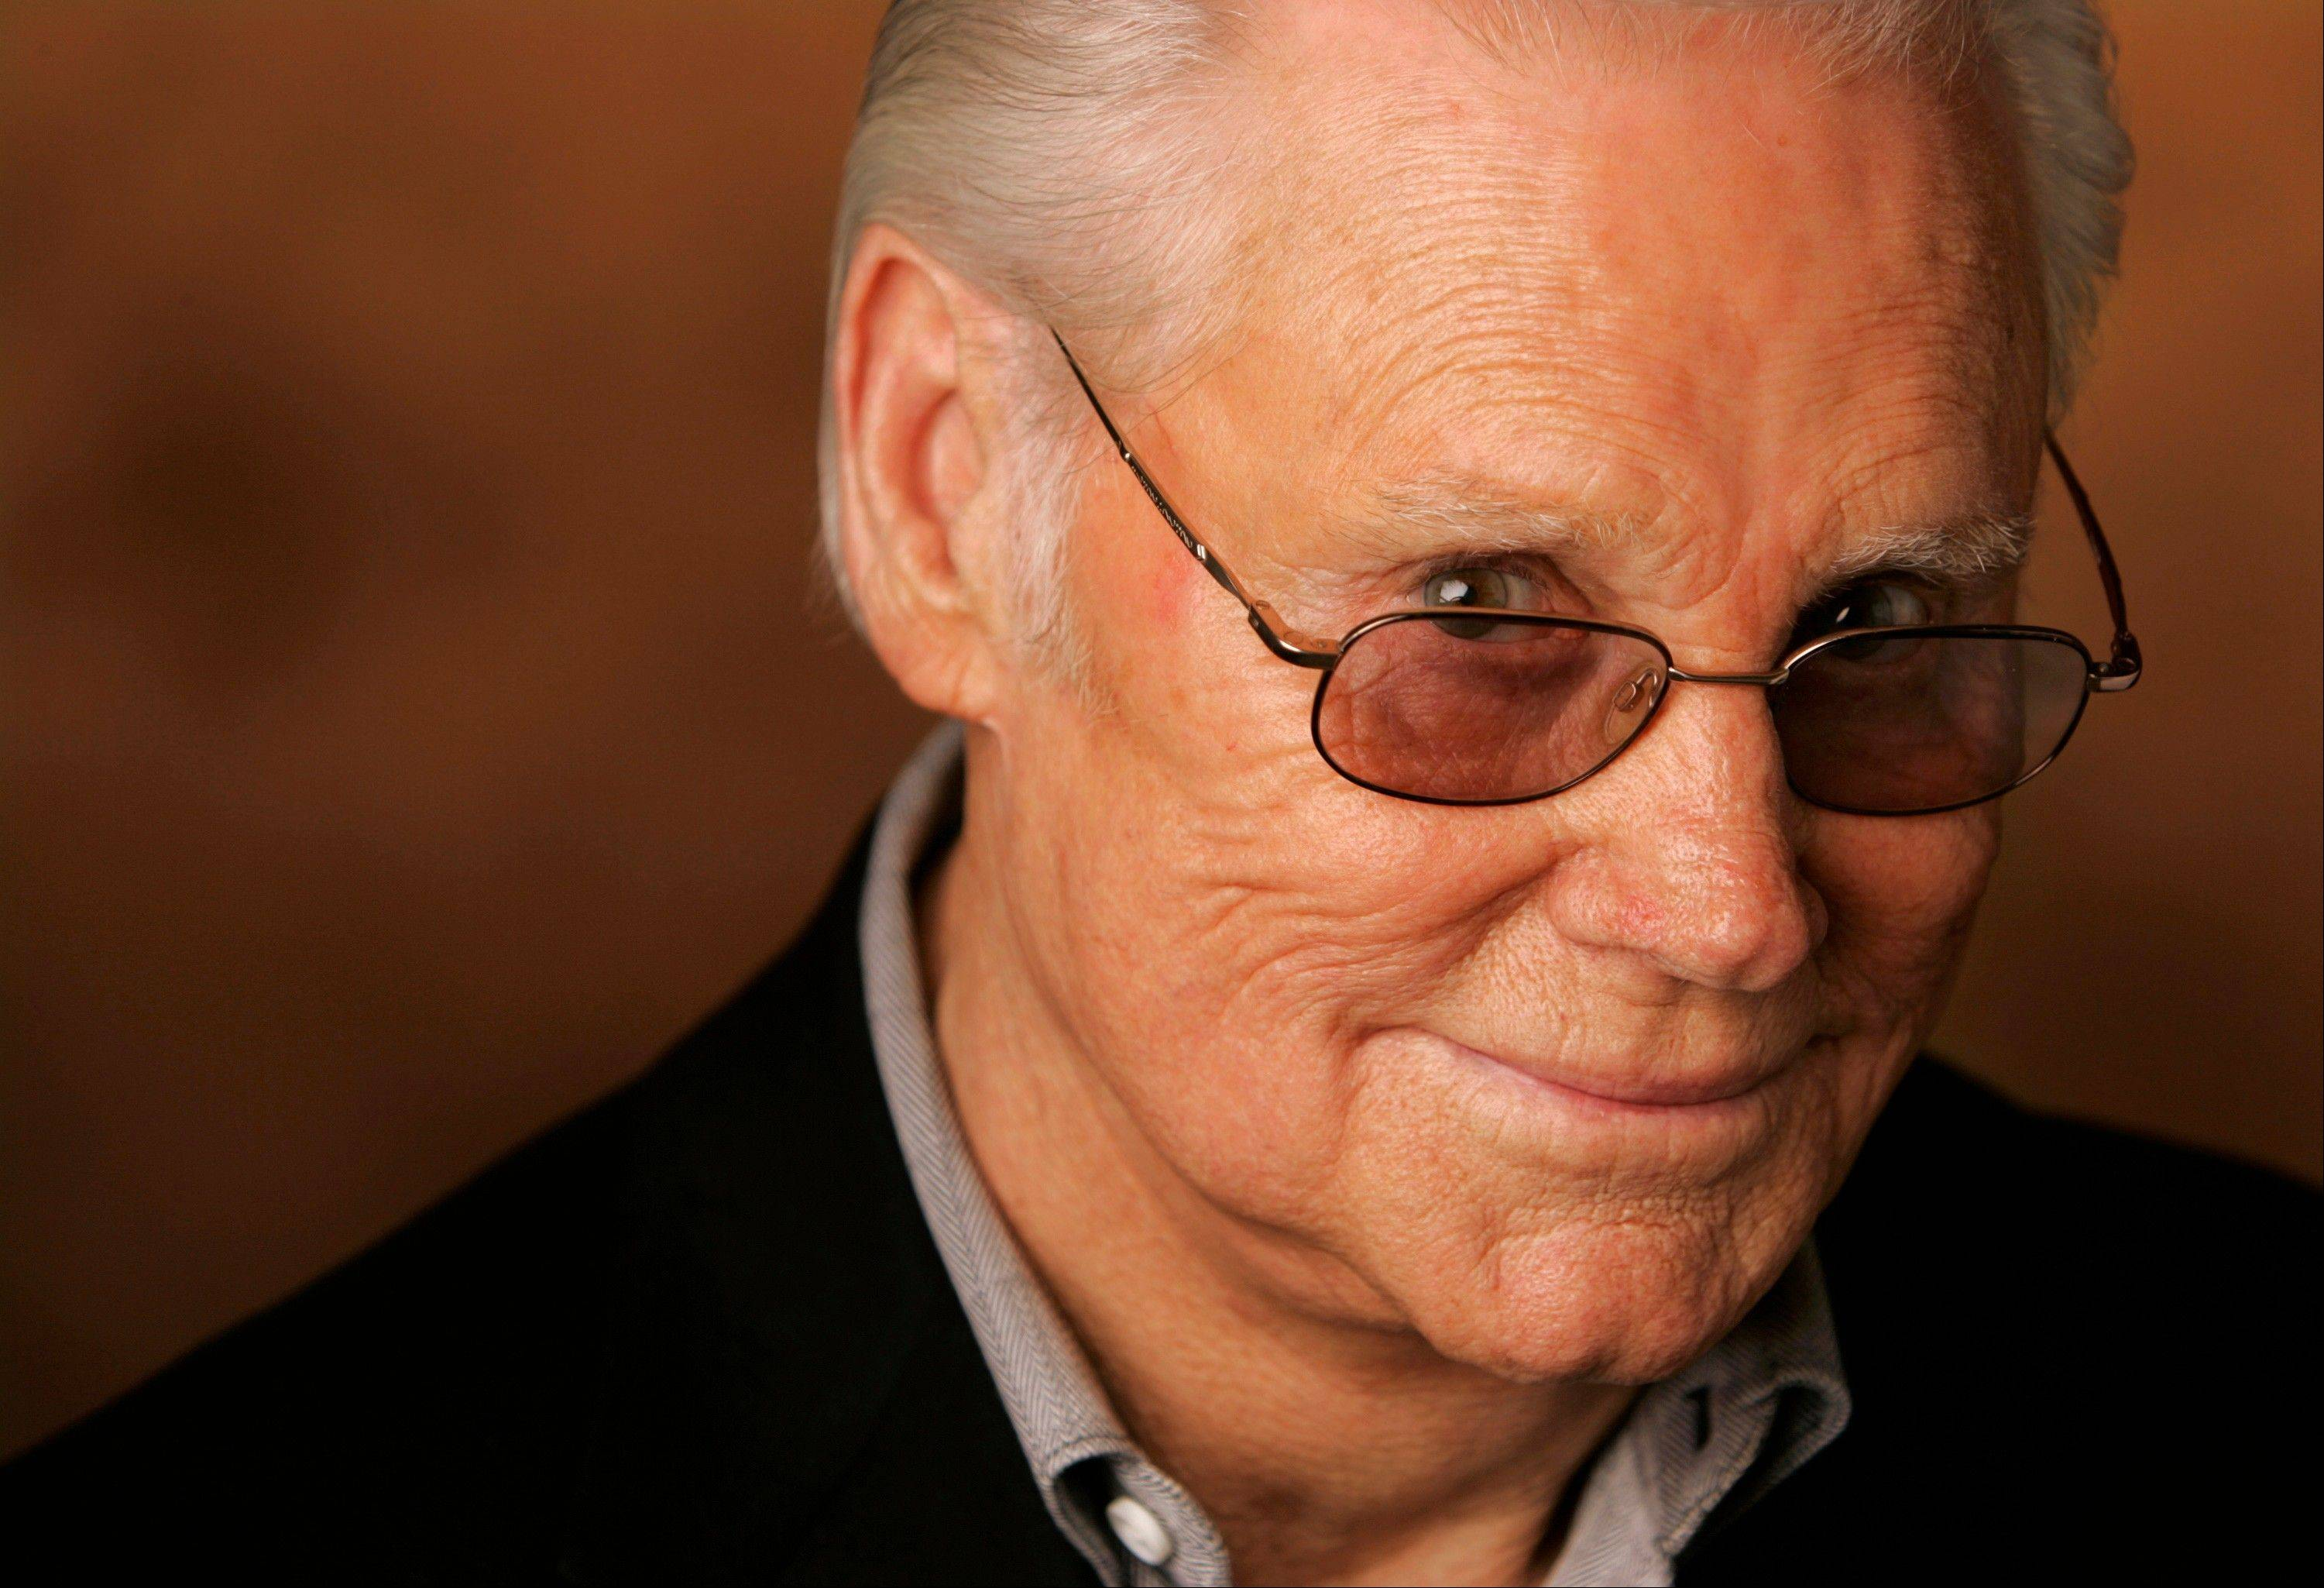 "George Jones, the peerless, hard-living country singer who recorded dozens of hits about good times and regrets and peaked with the heartbreaking classic ""He Stopped Loving Her Today,"" has died. He was 81. Jones died Friday, April 26, 2013 at Vanderbilt University Medical Center in Nashville after being hospitalized with fever and irregular blood pressure, according to his publicist Kirt Webster."